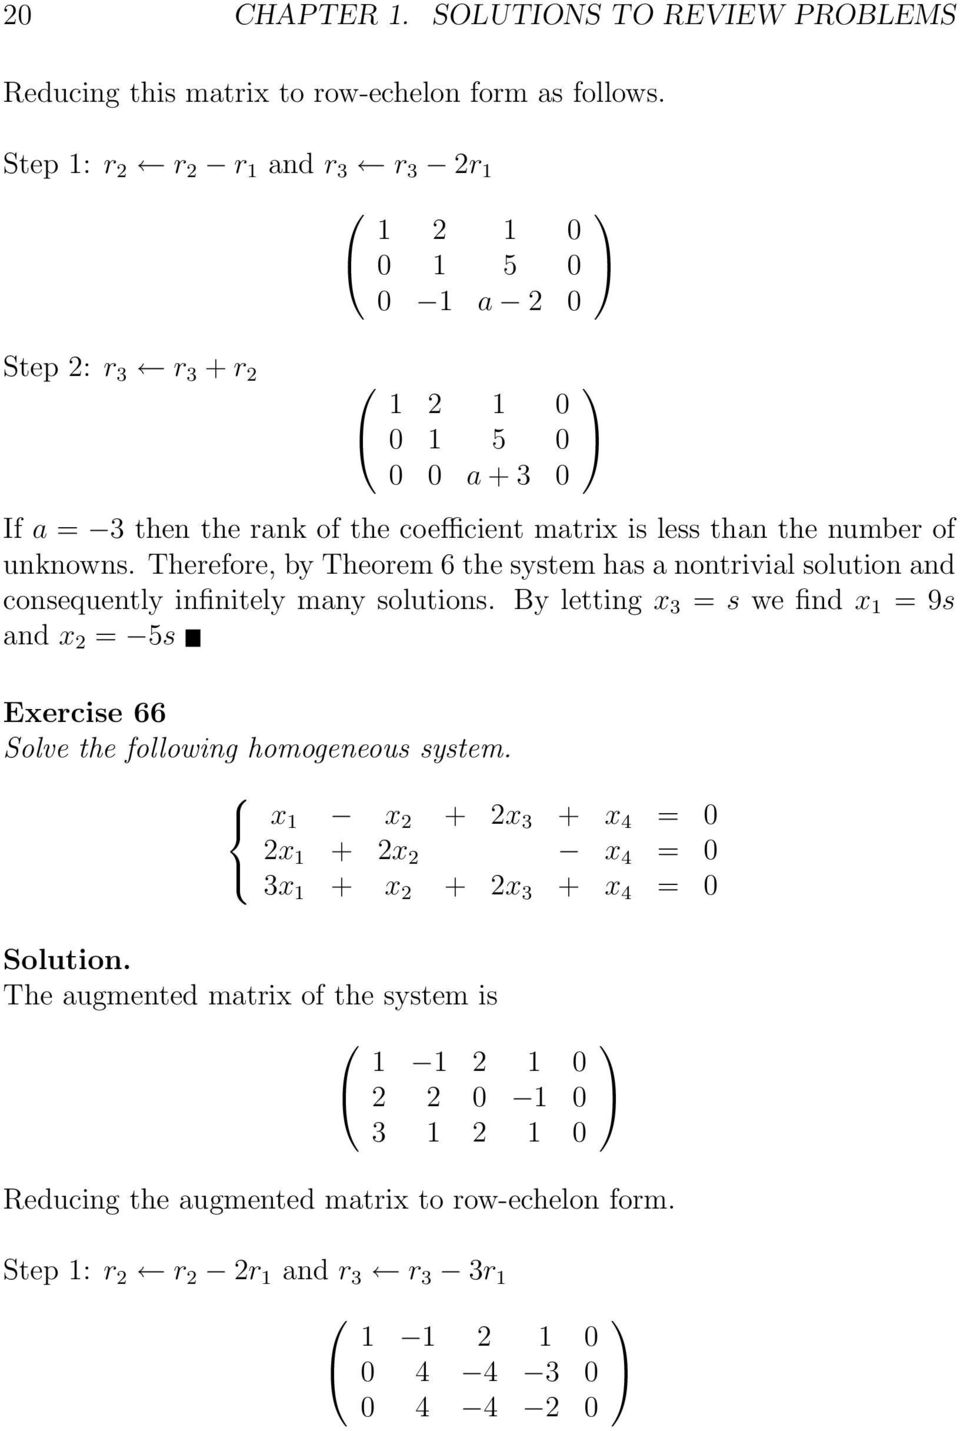 unknowns. Therefore, by Theorem 6 the system has a nontrivial solution and consequently infinitely many solutions.